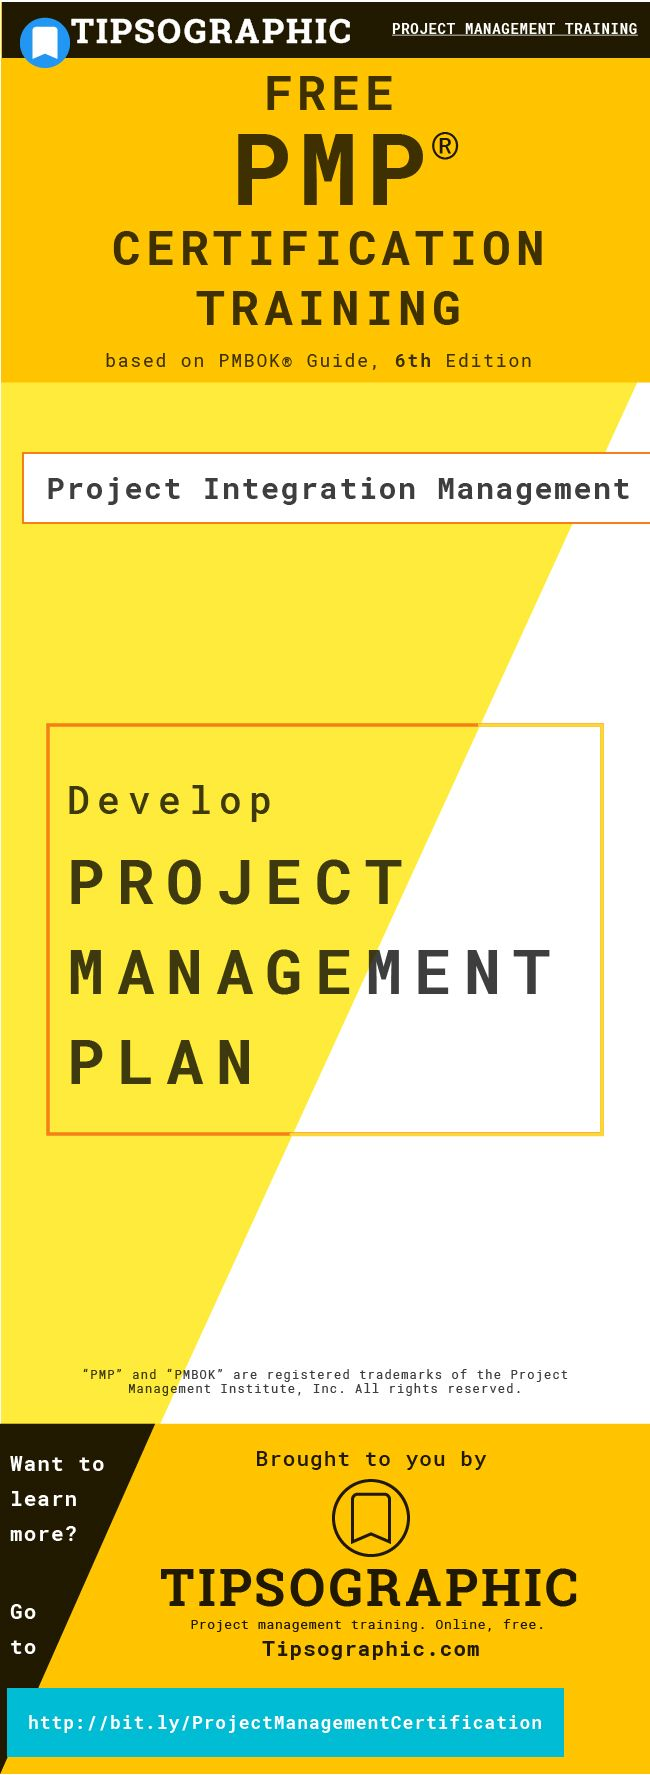 2574 best project management images on pinterest read more on tipsographic project management agile project management tools pmp 2018 agile 2018 scrum project management 2018 pmp free 1betcityfo Choice Image